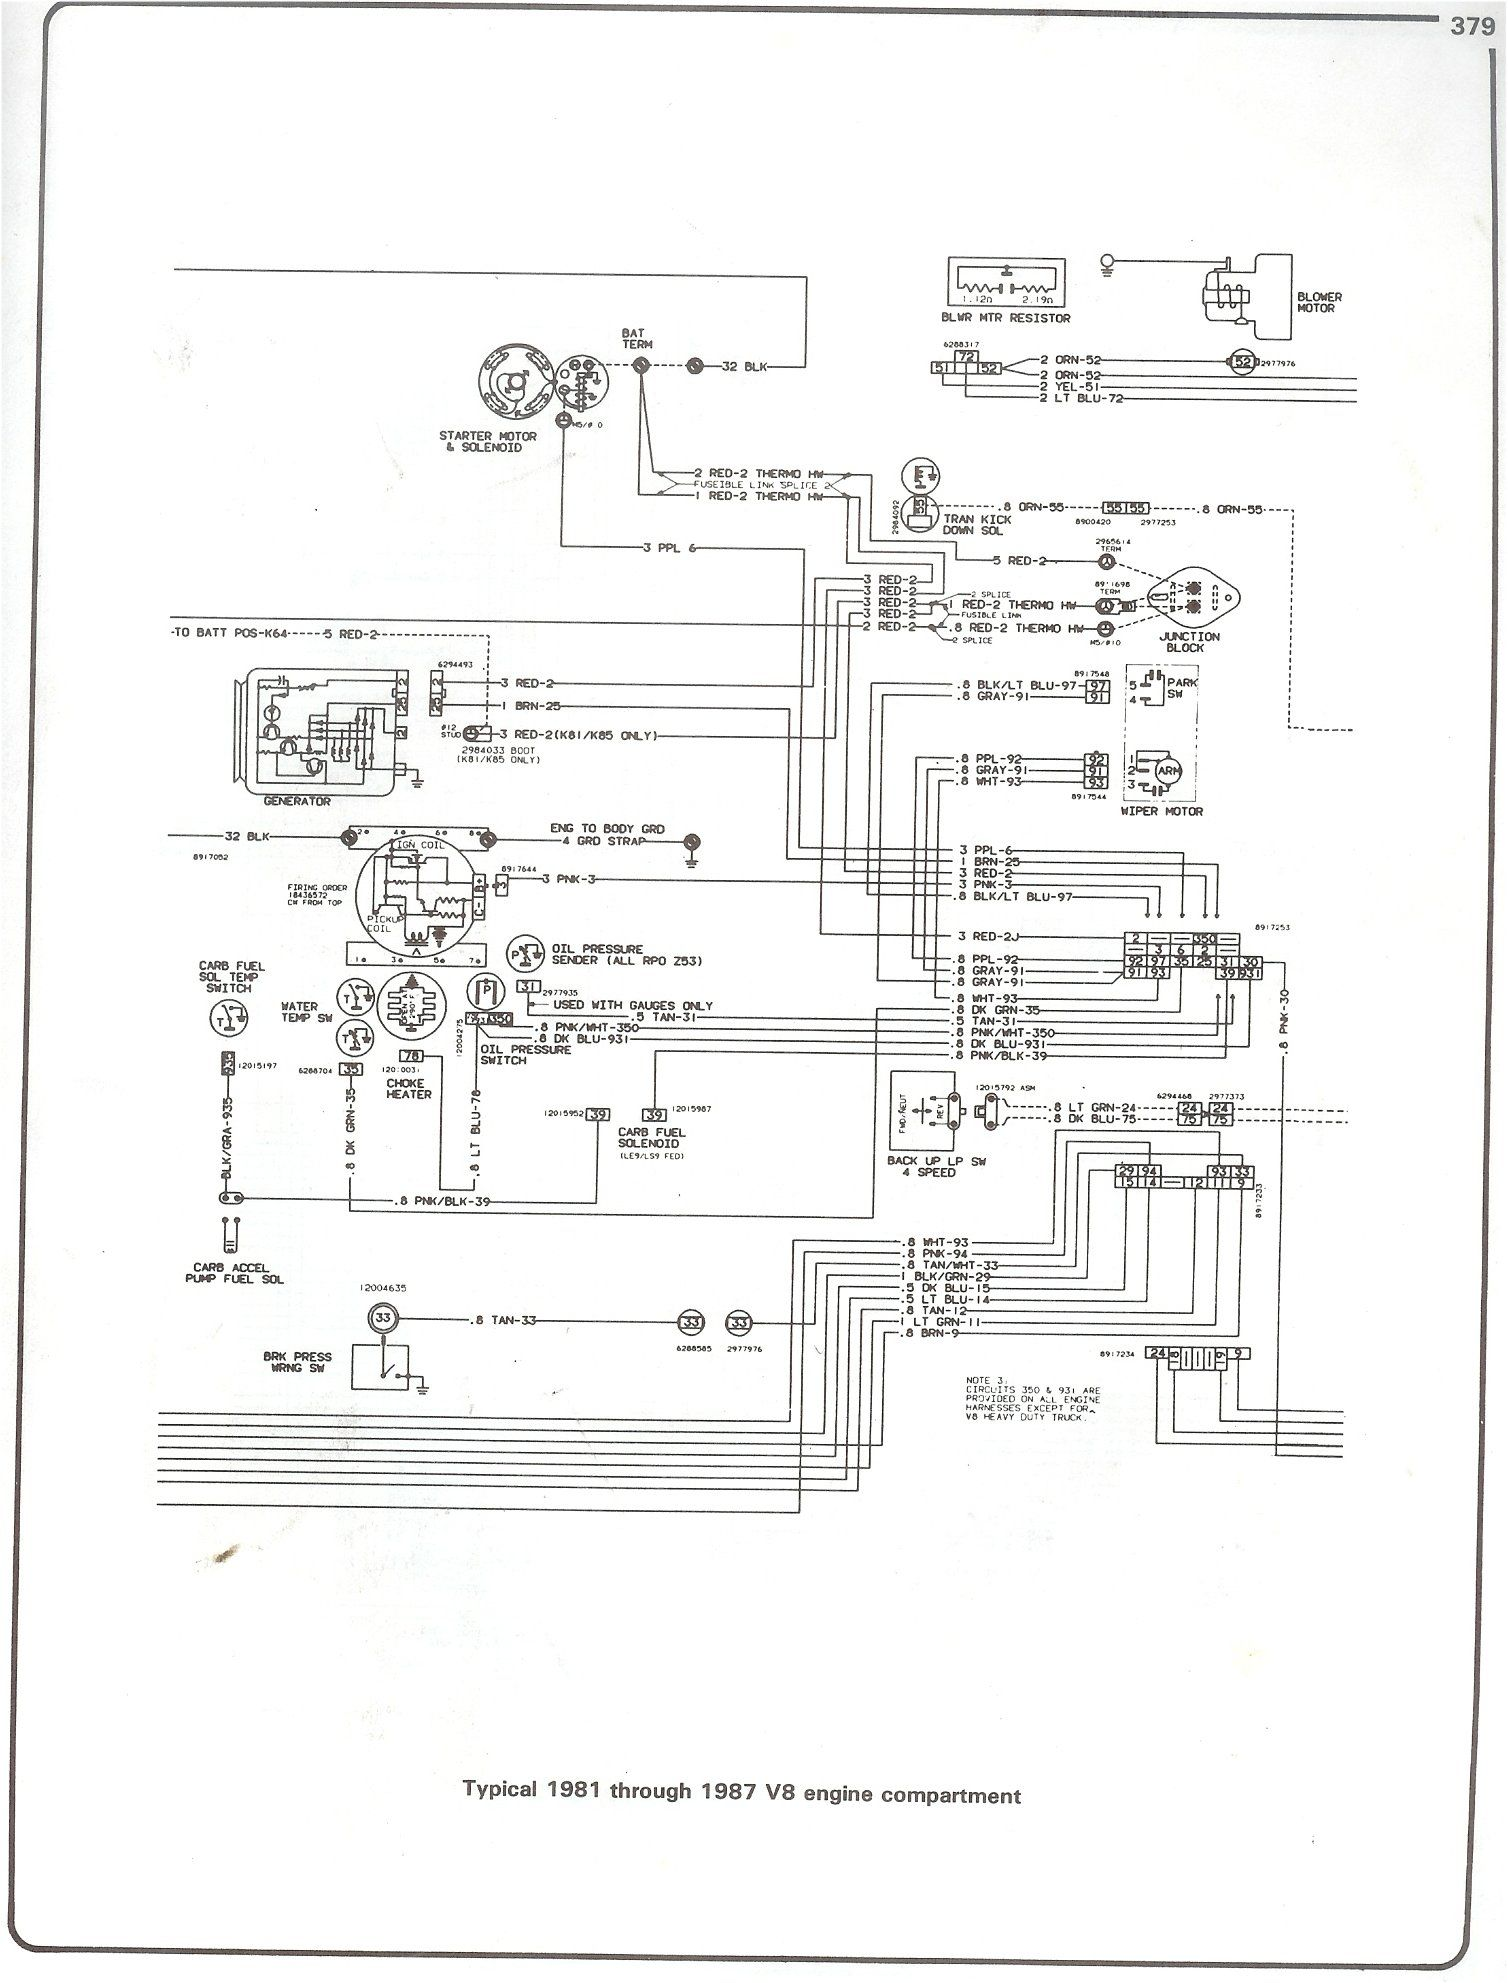 small resolution of 1987 chevy truck wiring harness wiring diagram centre 1987 chevy truck headlight wiring harness 1987 chevy truck wiring harness